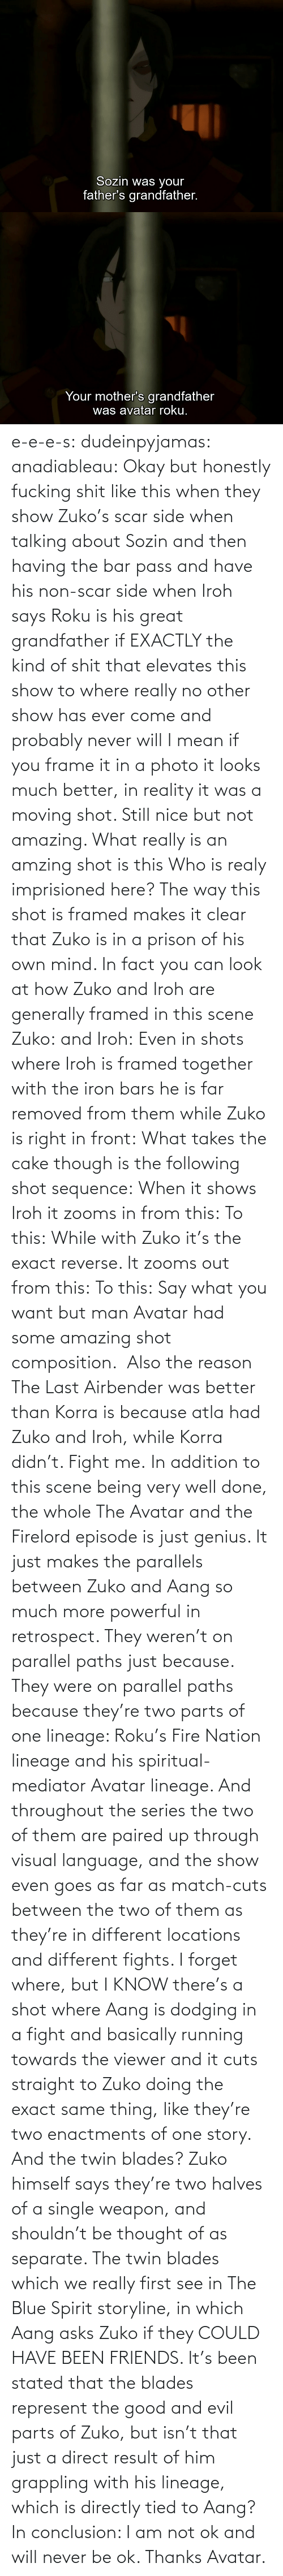 A Single: e-e-e-s: dudeinpyjamas:   anadiableau: Okay but honestly fucking shit like this when they show Zuko's scar side when talking about Sozin and then having the bar pass and have his non-scar side when Iroh says Roku is his great grandfather if EXACTLY the kind of shit that elevates this show to where really no other show has ever come and probably never will I mean if you frame it in a photo it looks much better, in reality it was a moving shot. Still nice but not amazing. What really is an amzing shot is this Who is realy imprisioned here? The way this shot is framed makes it clear that Zuko is in a prison of his own mind. In fact you can look at how Zuko and Iroh are generally framed in this scene Zuko: and Iroh: Even in shots where Iroh is framed together with the iron bars he is far removed from them while Zuko is right in front:  What takes the cake though is the following shot sequence: When it shows Iroh it zooms in from this: To this: While with Zuko it's the exact reverse. It zooms out from this: To this: Say what you want but man Avatar had some amazing shot composition.   Also the reason The Last Airbender was better than Korra is because atla had Zuko and Iroh, while Korra didn't. Fight me.    In addition to this scene being very well done, the whole The Avatar and the Firelord episode is just genius.  It just makes the parallels between Zuko and Aang so much more powerful in retrospect.  They weren't on parallel paths just because.  They were on parallel paths because they're two parts of one lineage: Roku's Fire Nation lineage and his spiritual-mediator Avatar lineage.  And throughout the series the two of them are paired up through visual language, and the show even goes as far as match-cuts between the two of them as they're in different locations and different fights.  I forget where, but I KNOW there's a shot where Aang is dodging in a fight and basically running towards the viewer and it cuts straight to Zuko doing the exact same thing, like they're two enactments of one story.   And the twin blades?  Zuko himself says they're two halves of a single weapon, and shouldn't be thought of as separate.  The twin blades which we really first see in The Blue Spirit storyline, in which Aang asks Zuko if they COULD HAVE BEEN FRIENDS.  It's been stated that the blades represent the good and evil parts of Zuko, but isn't that just a direct result of him grappling with his lineage, which is directly tied to Aang? In conclusion: I am not ok and will never be ok.  Thanks Avatar.